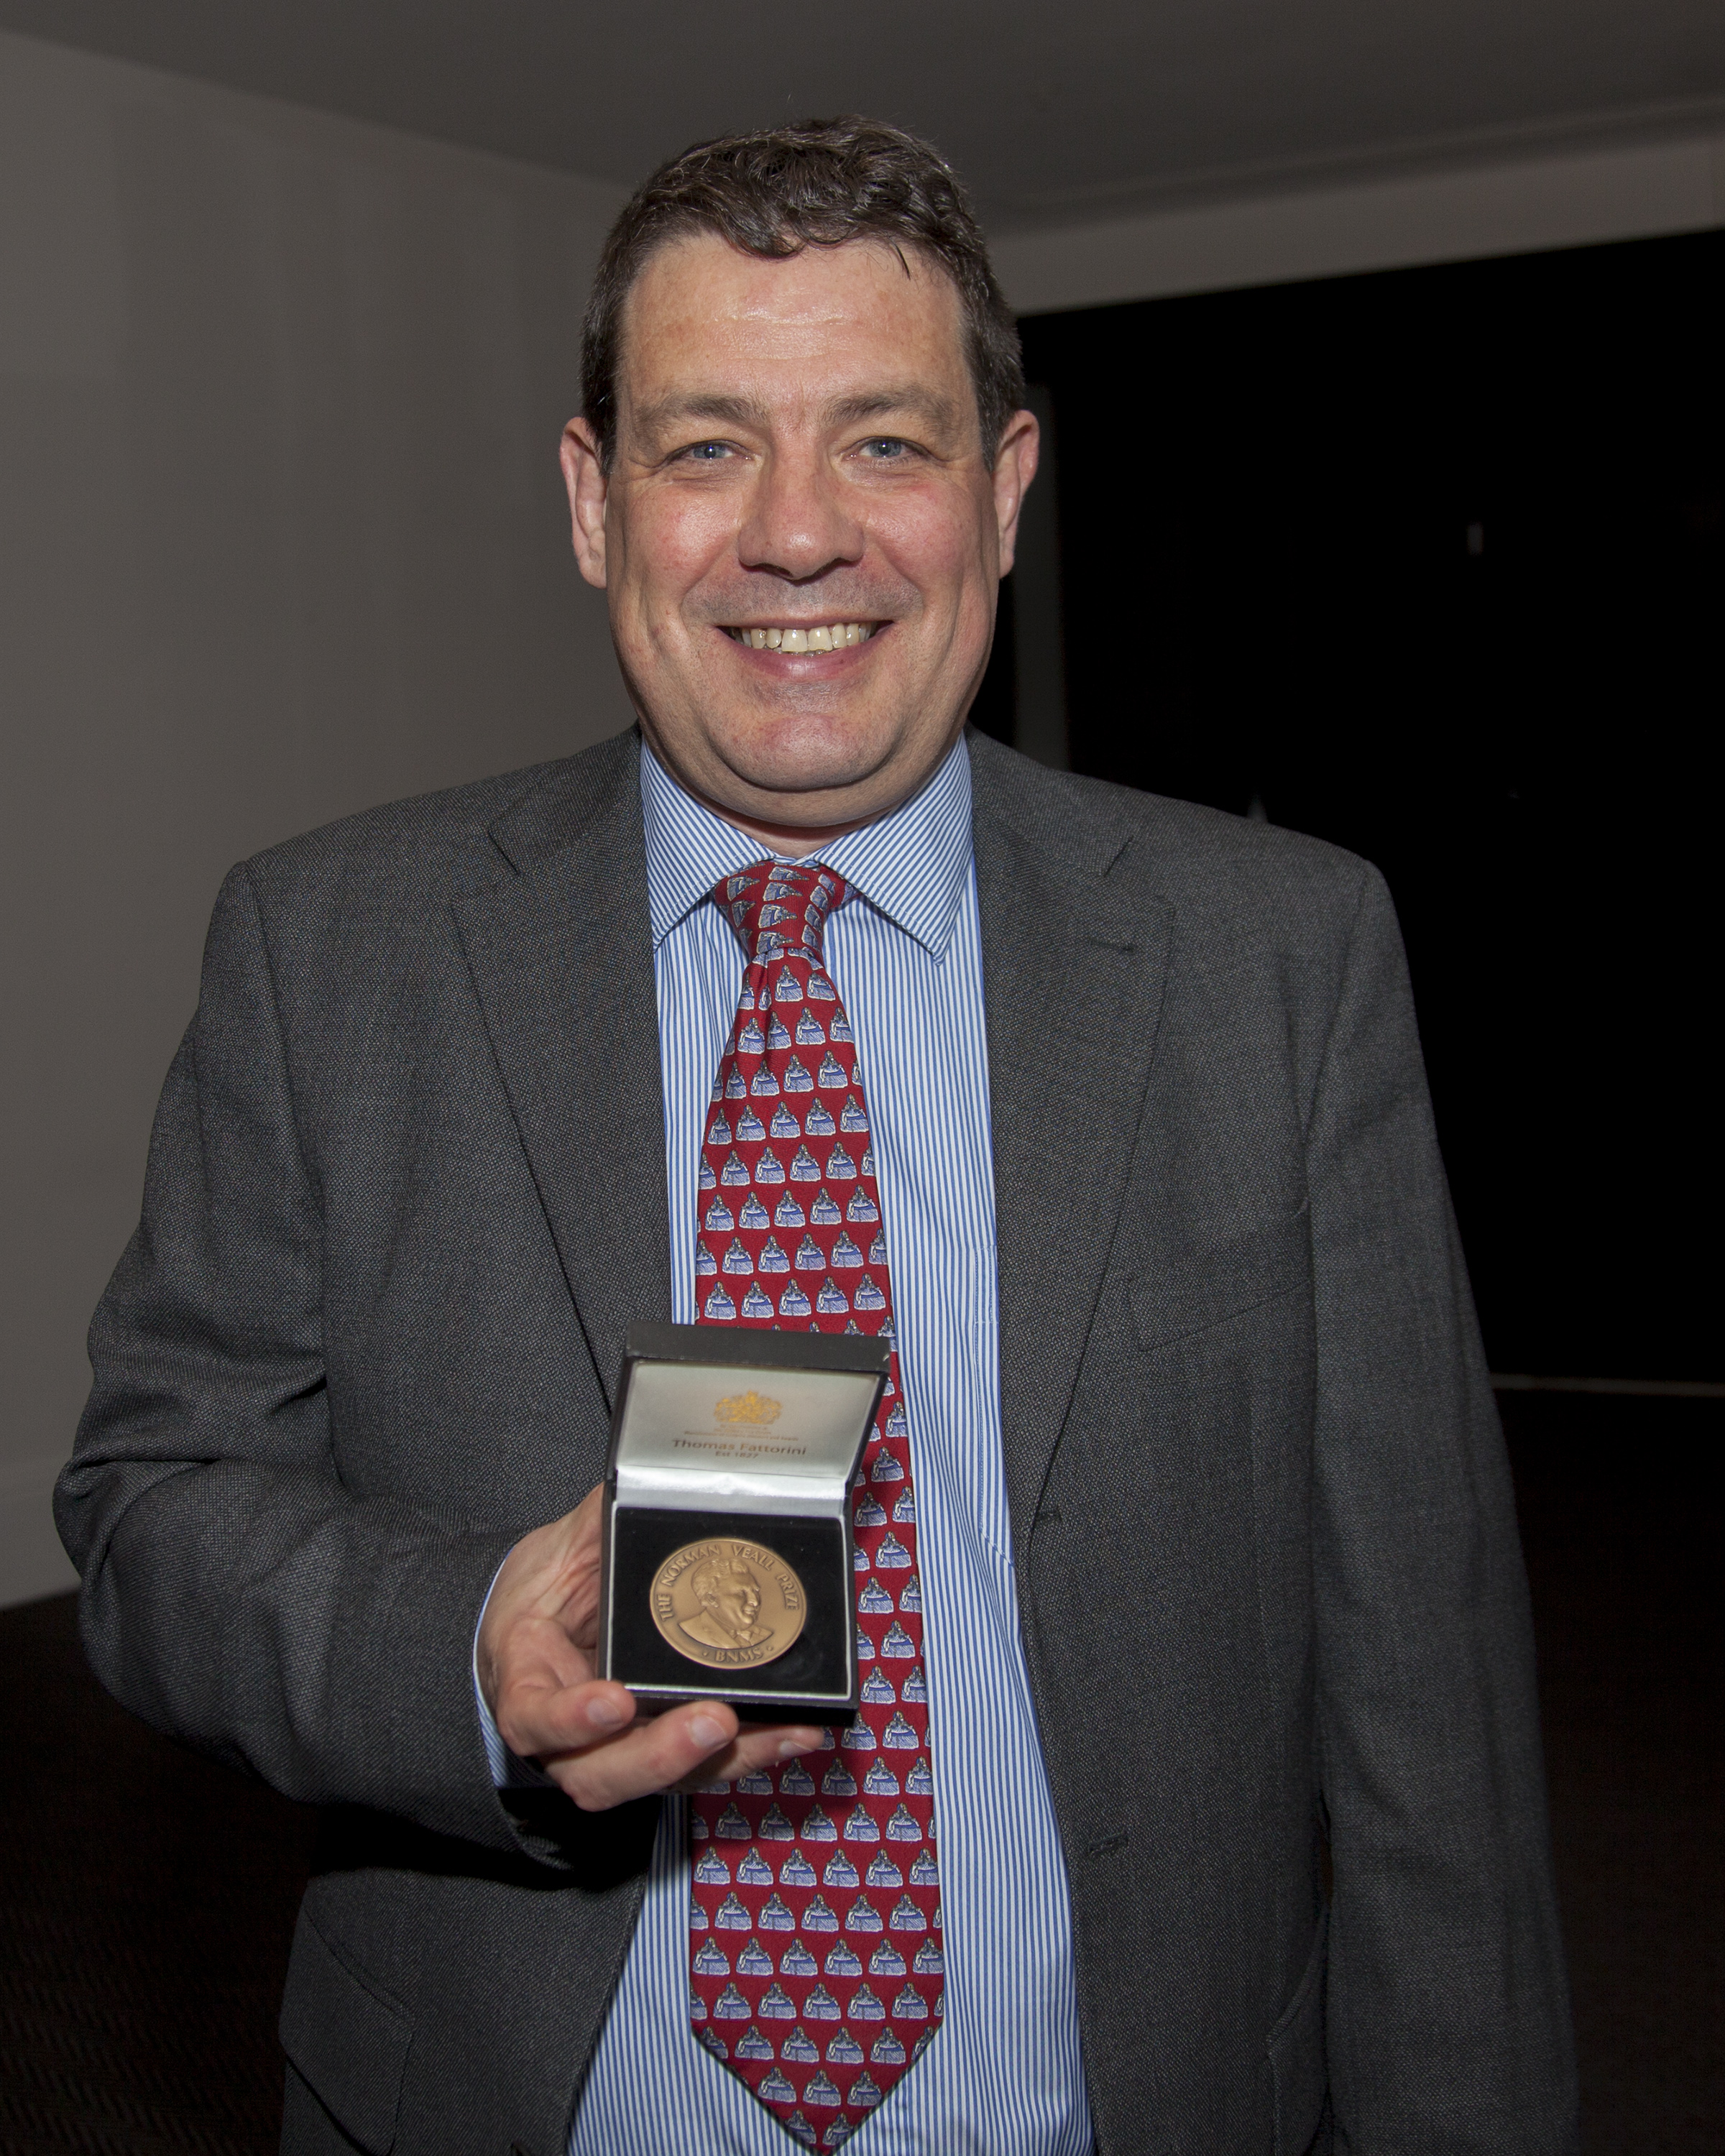 BNMS Norman Veall medal to Dr Roger Staff